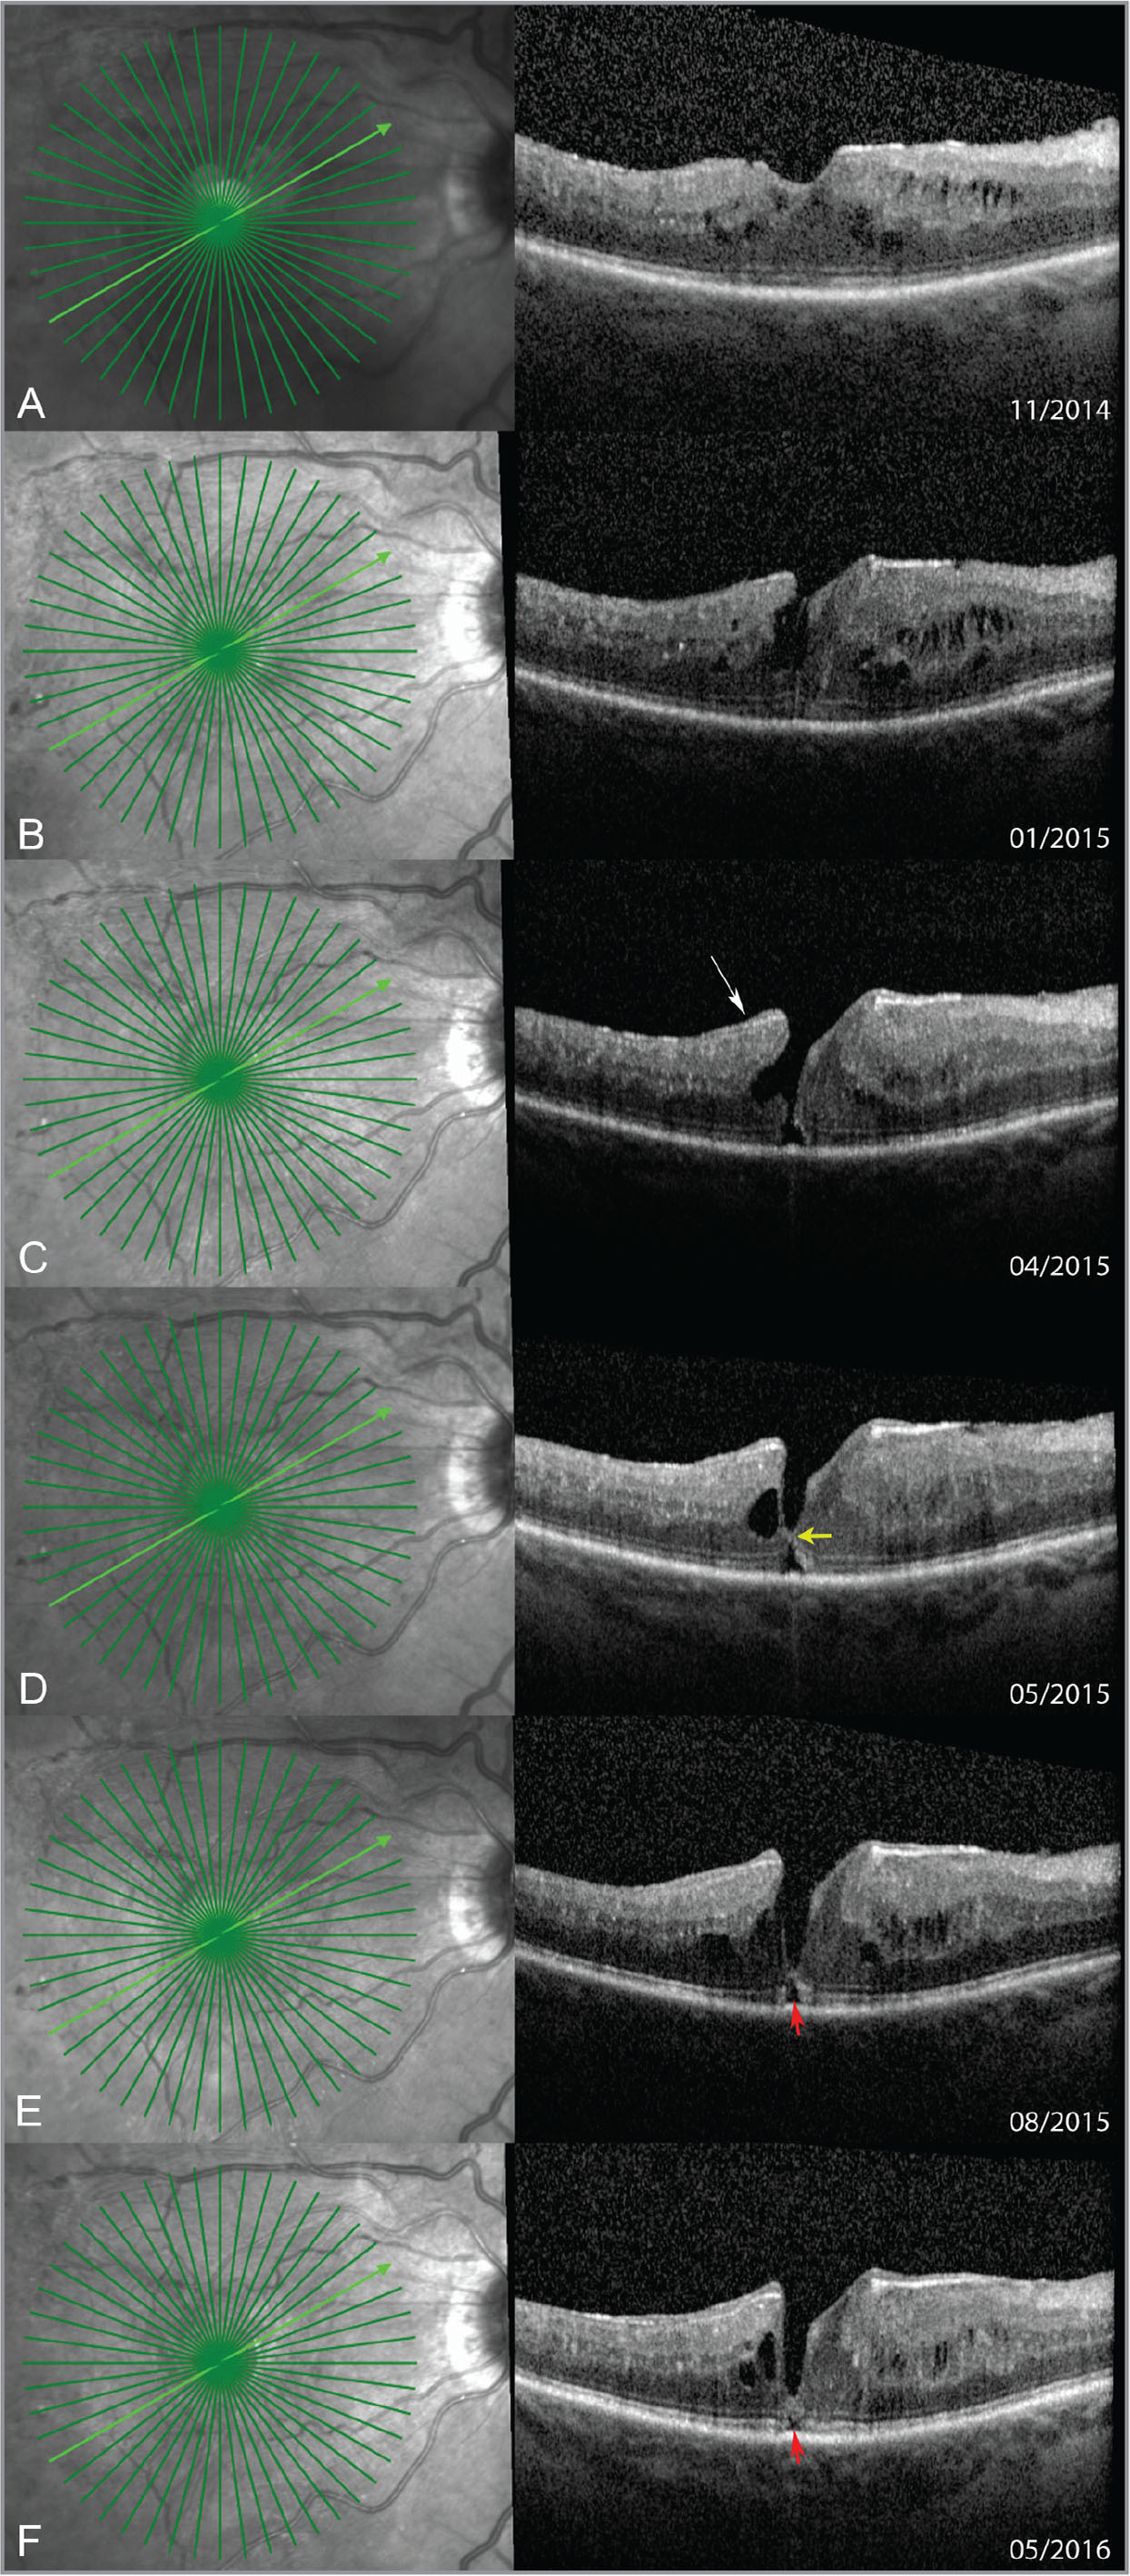 Sequential radial optical coherence tomography (OCT) scans in 61-year-old female with a tractional retinal detachment following repair and epiretinal membrane (ERM) peel. Two months following vitrectomy, foveal contour was intact with mild cystic edema and an ERM (A). Four months postoperatively, a lamellar hole developed (B), which progressed to a full-thickness macular hole (FTMH) 7 months following vitrectomy. A narrow base with wider separation in the inner retina was consistent with lamellar macular hole formation before the FTMH. Associated lamellar hole epiretinal proliferation was visualized as a hyporeflective layer (white arrow; C). During a 2-week period, there was spontaneous closure with the appearance of bridging tissue on OCT at the level of the outer nuclear layer (yellow arrow; D). There was progressive restoration of the outer retinal bands with a small residual defect in the ellipsoid zone (red arrow; E, F).